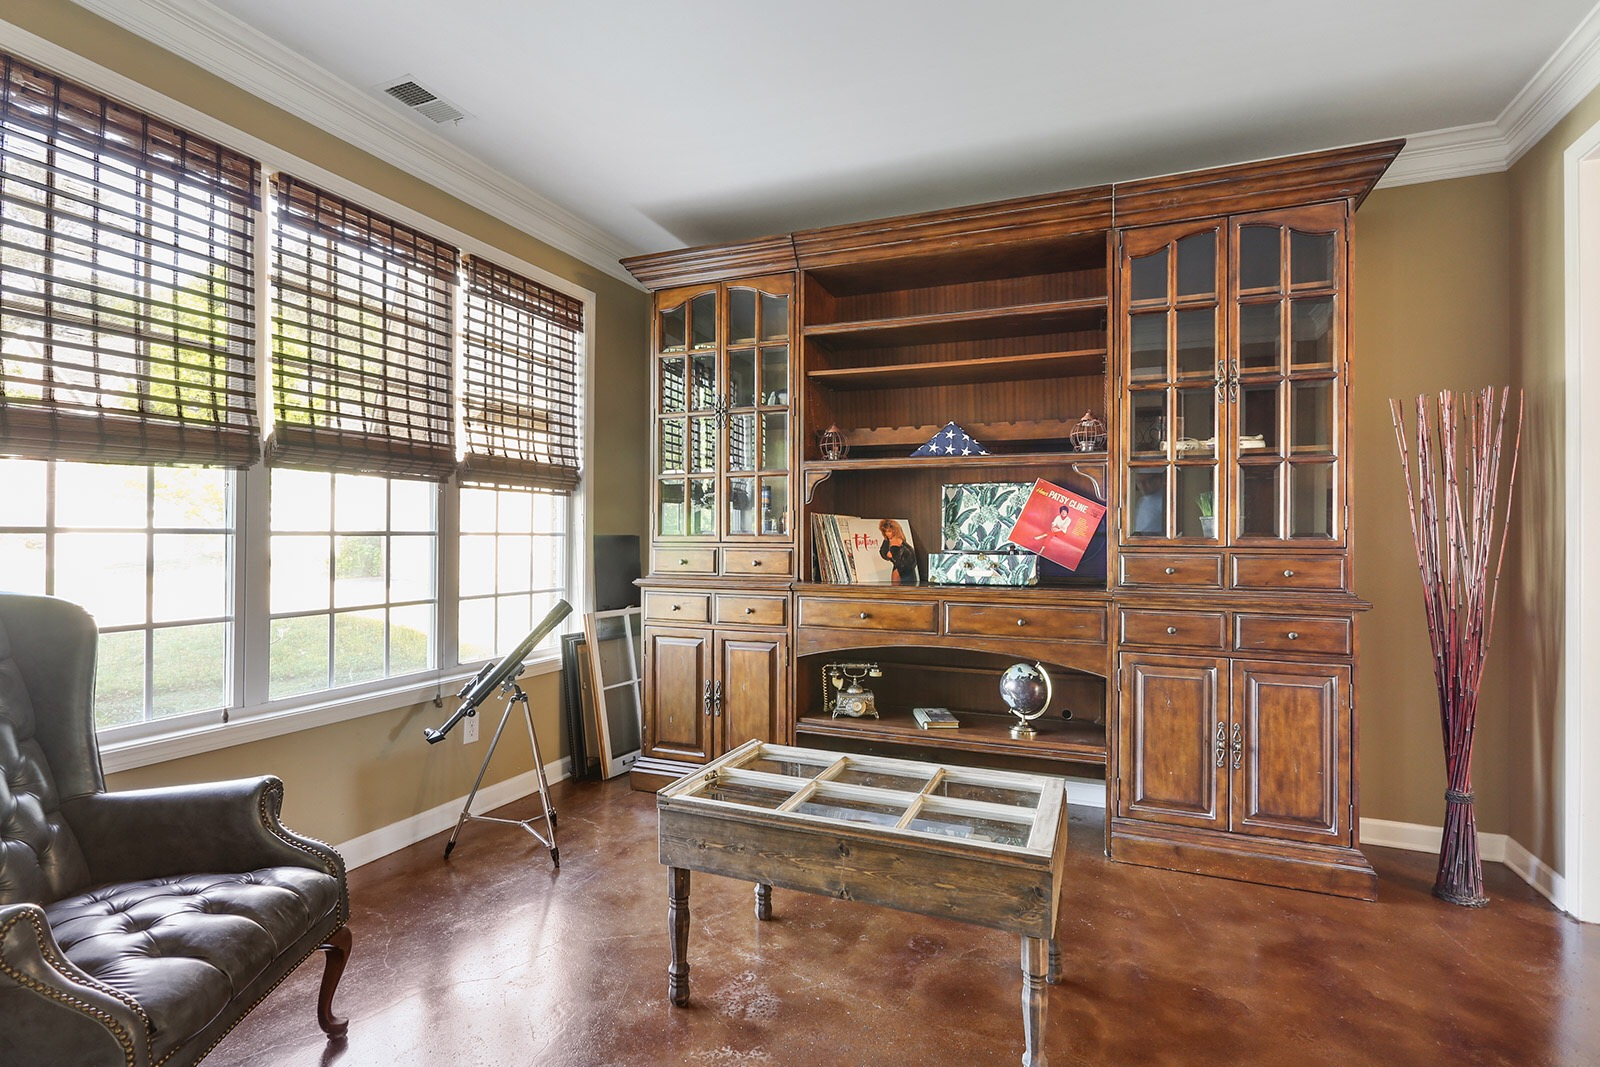 finally your unicorn great powder springs home spacious formal living room perfect spot for an office on the main level a music room a library or a formal sitting area view from dining room to